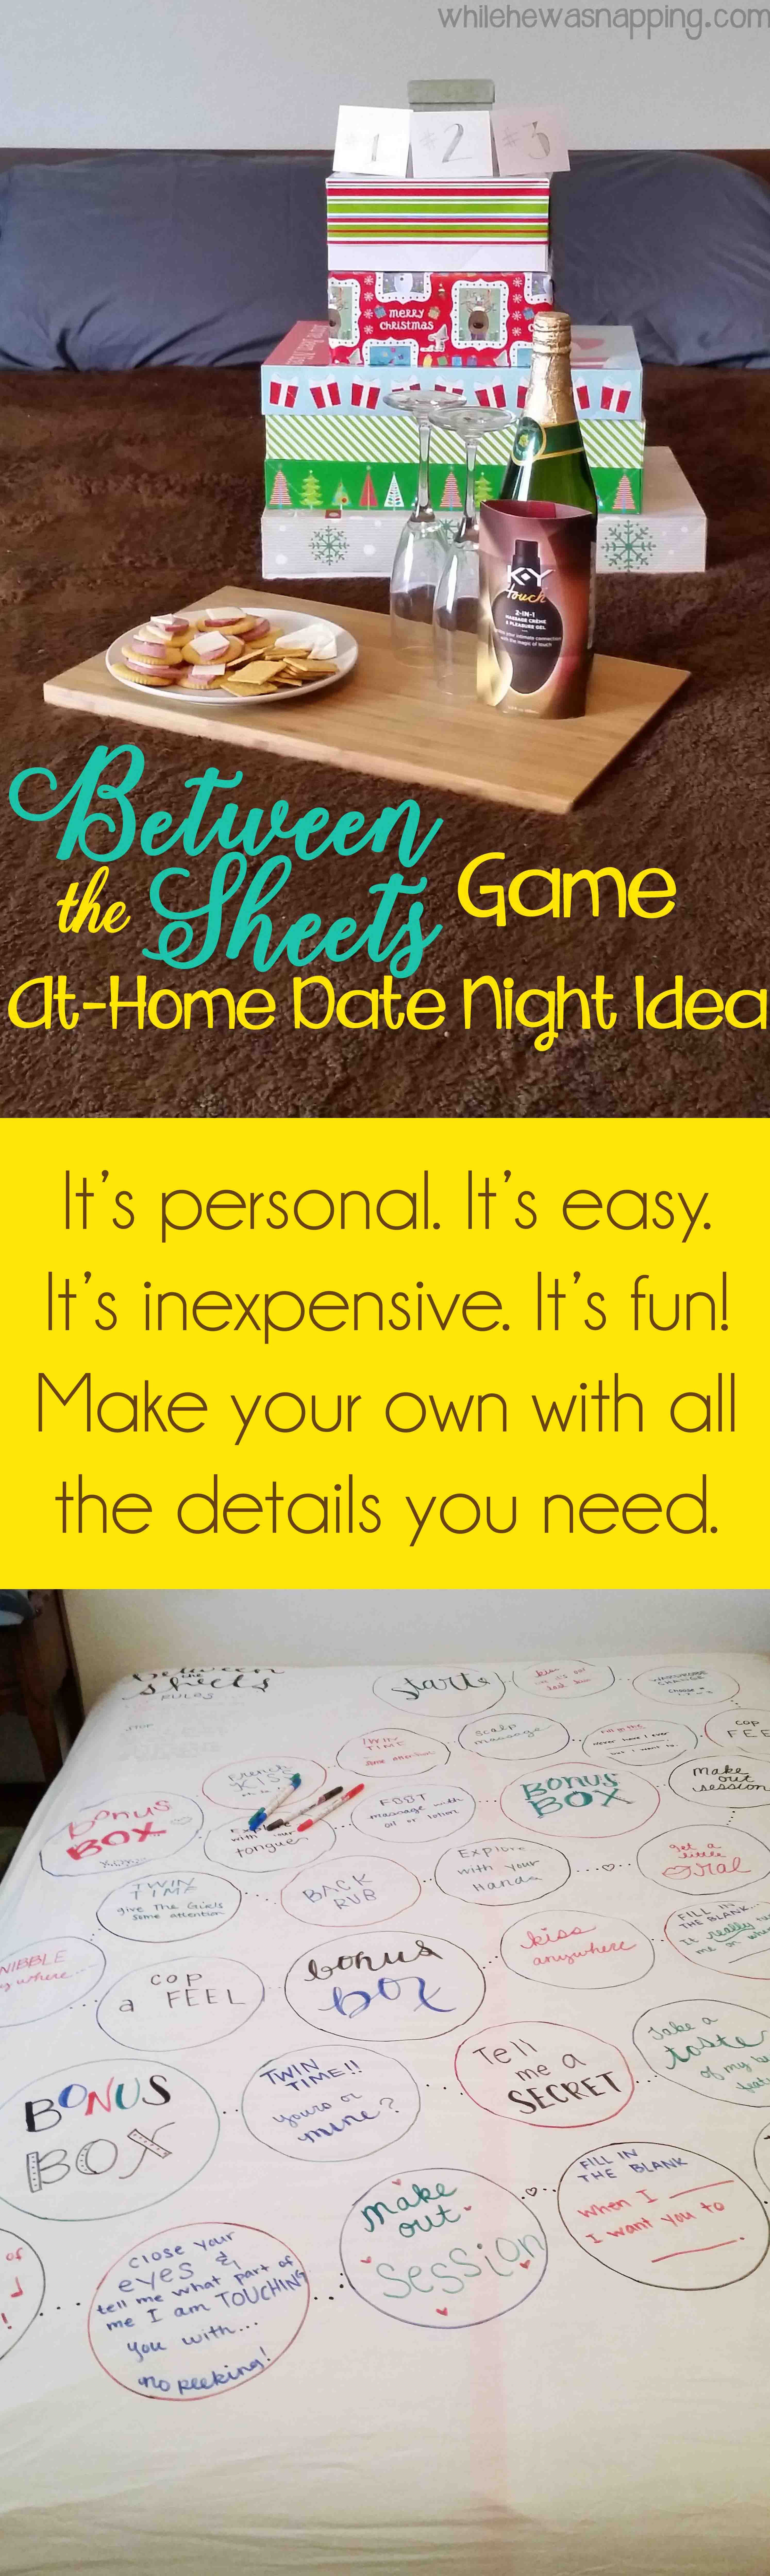 A Great Bedroom Game You Can DIY That Doubles As A Gift And A Date Night